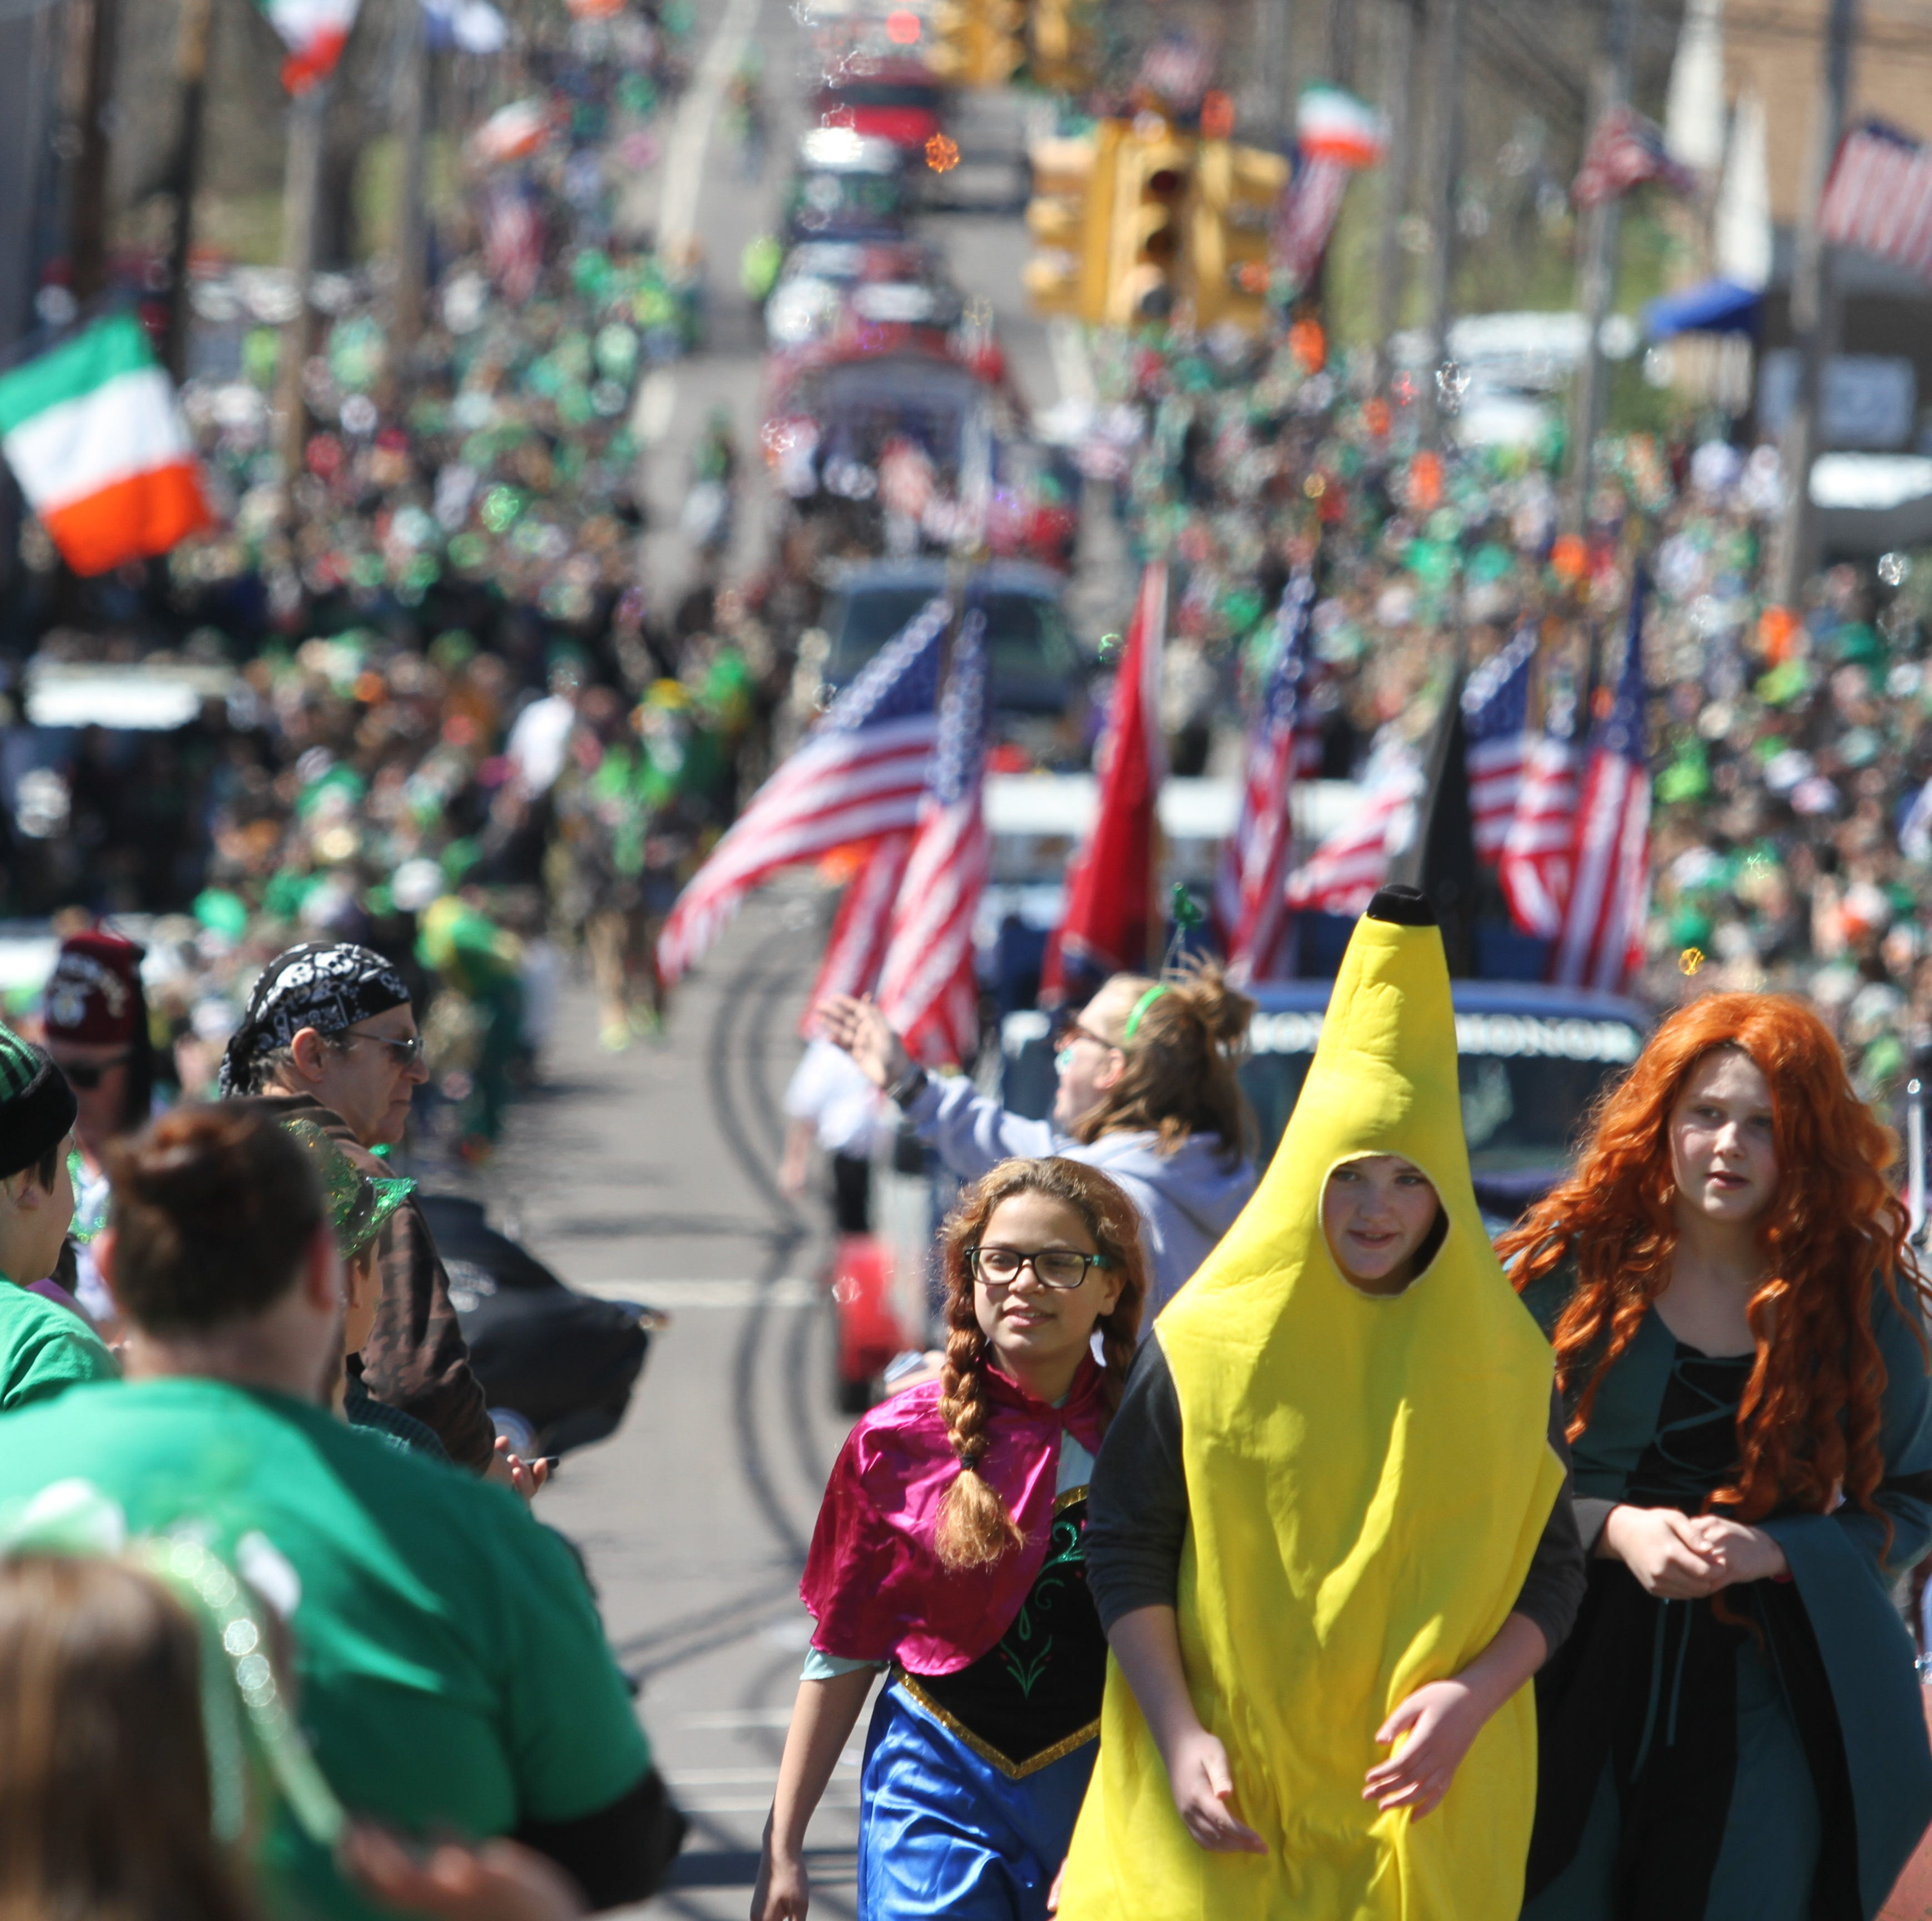 Irish Day Parade 2019 pulls up 'Roots of the Irish' in Erin